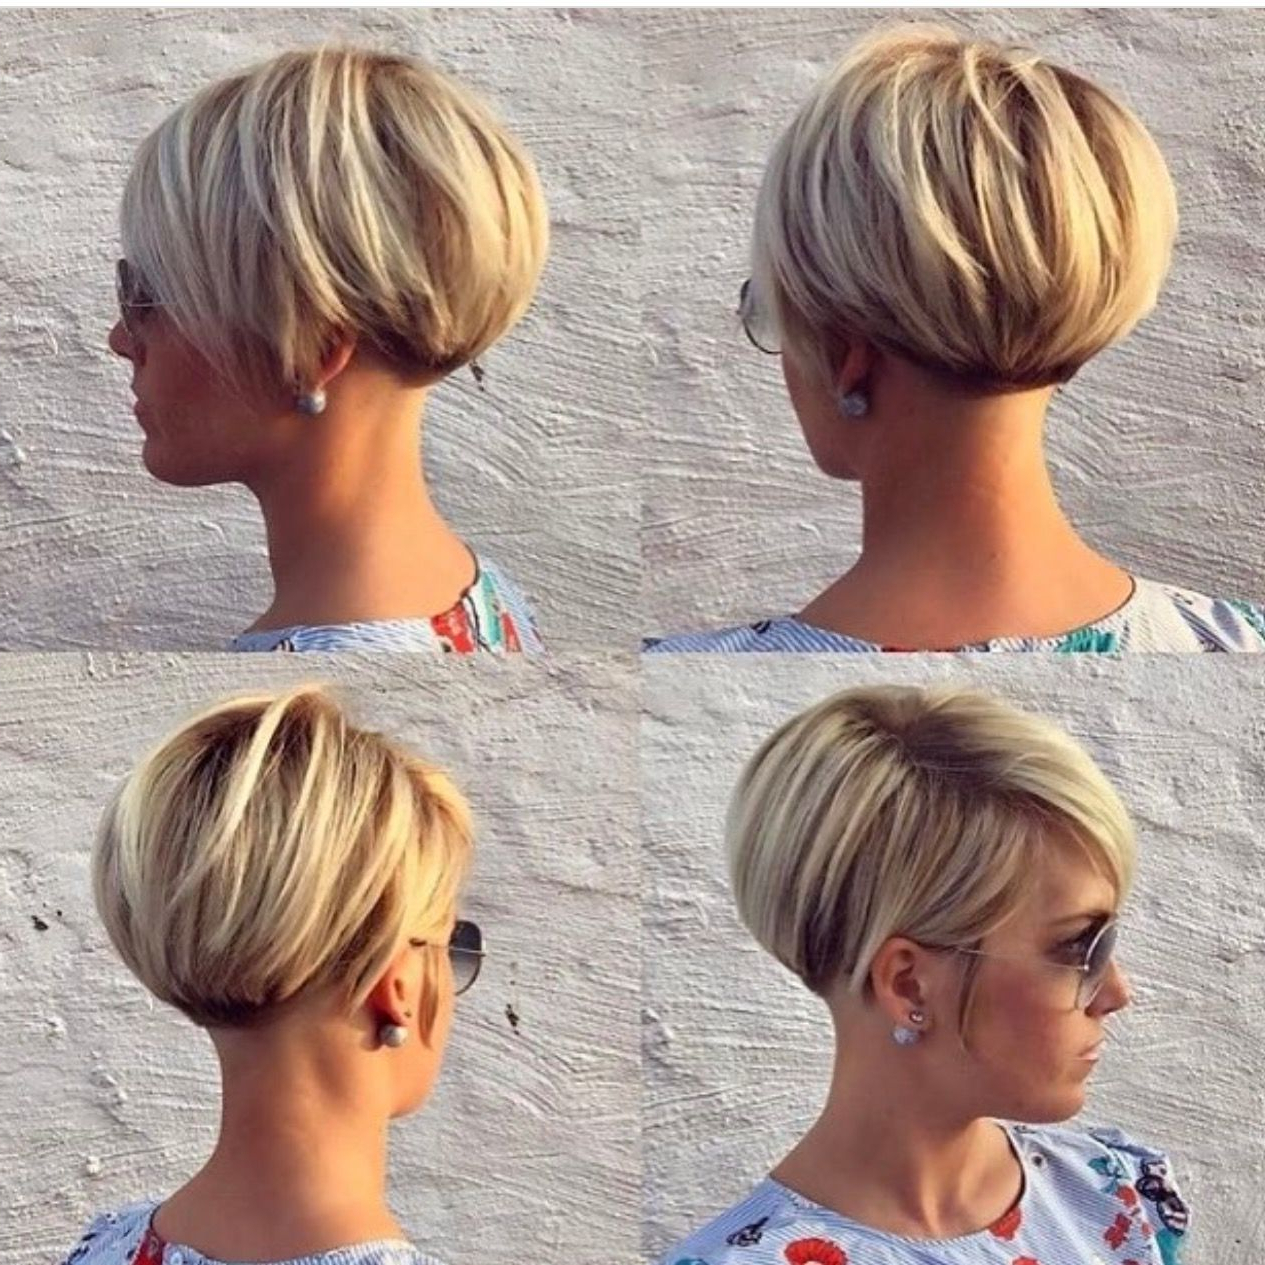 Pinsvetlana Marchuk On Haircuts In 2018 | Pinterest | Short Hair Within Side Parted White Blonde Pixie Bob Haircuts (View 10 of 20)